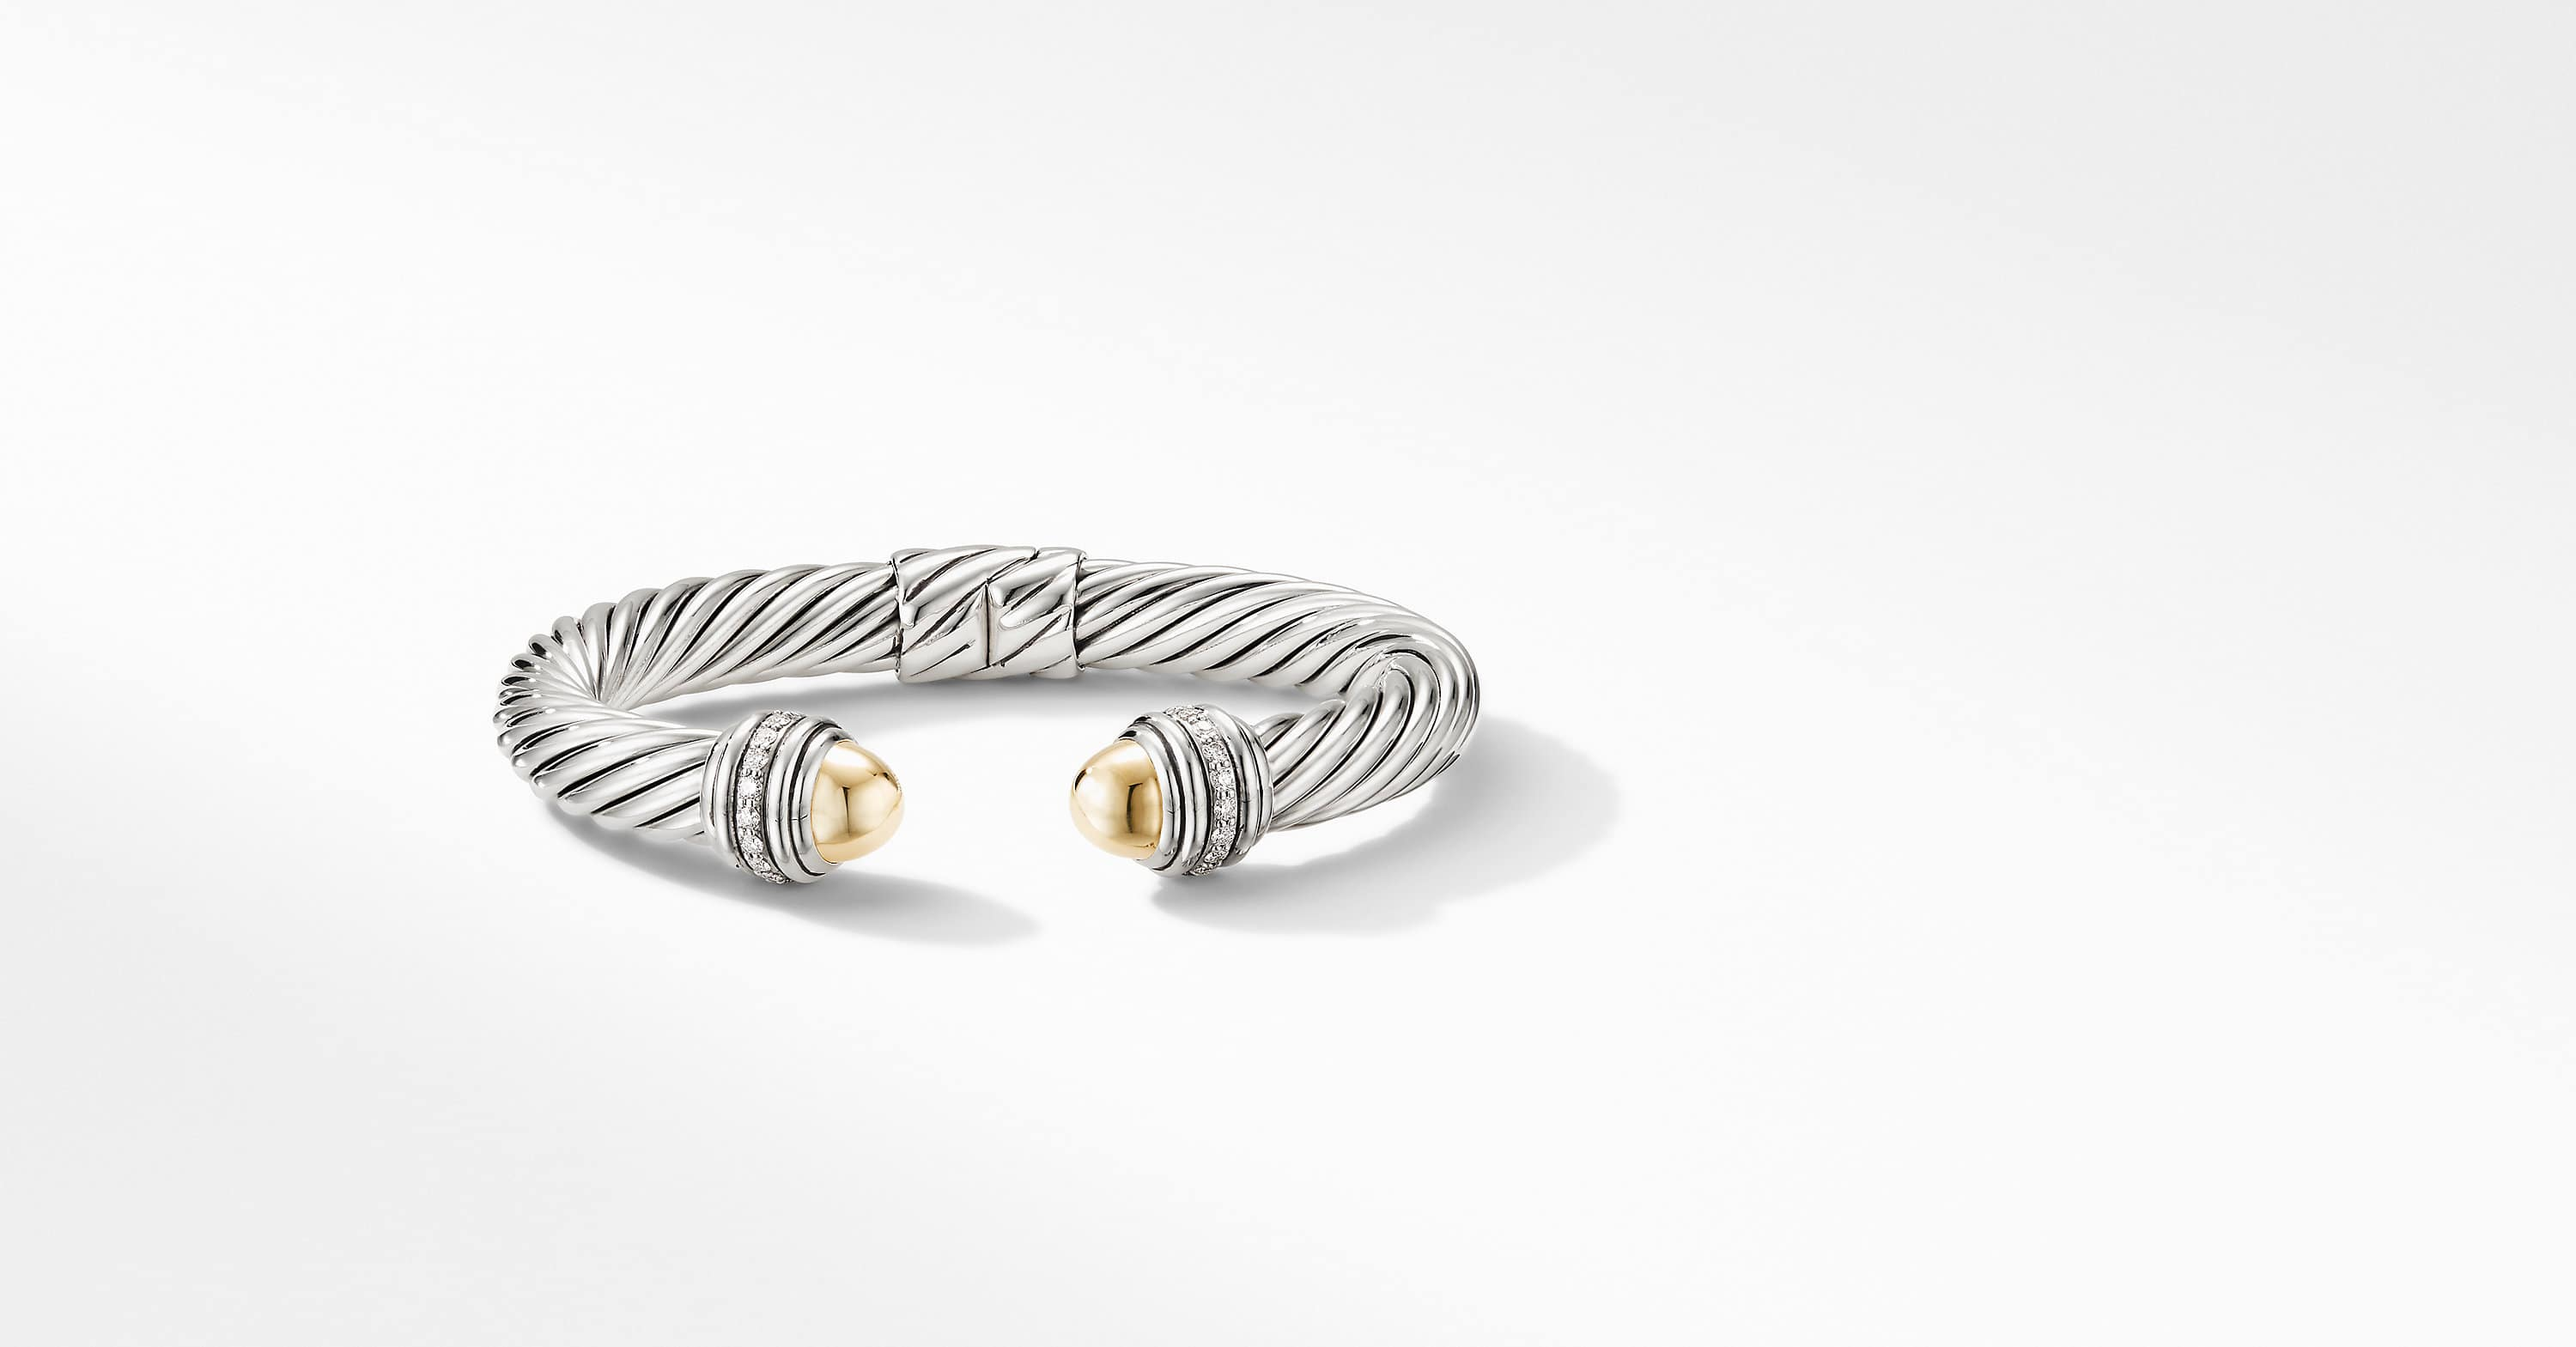 Cable Bracelet with 18K Yellow Gold and Diamonds, 9mm